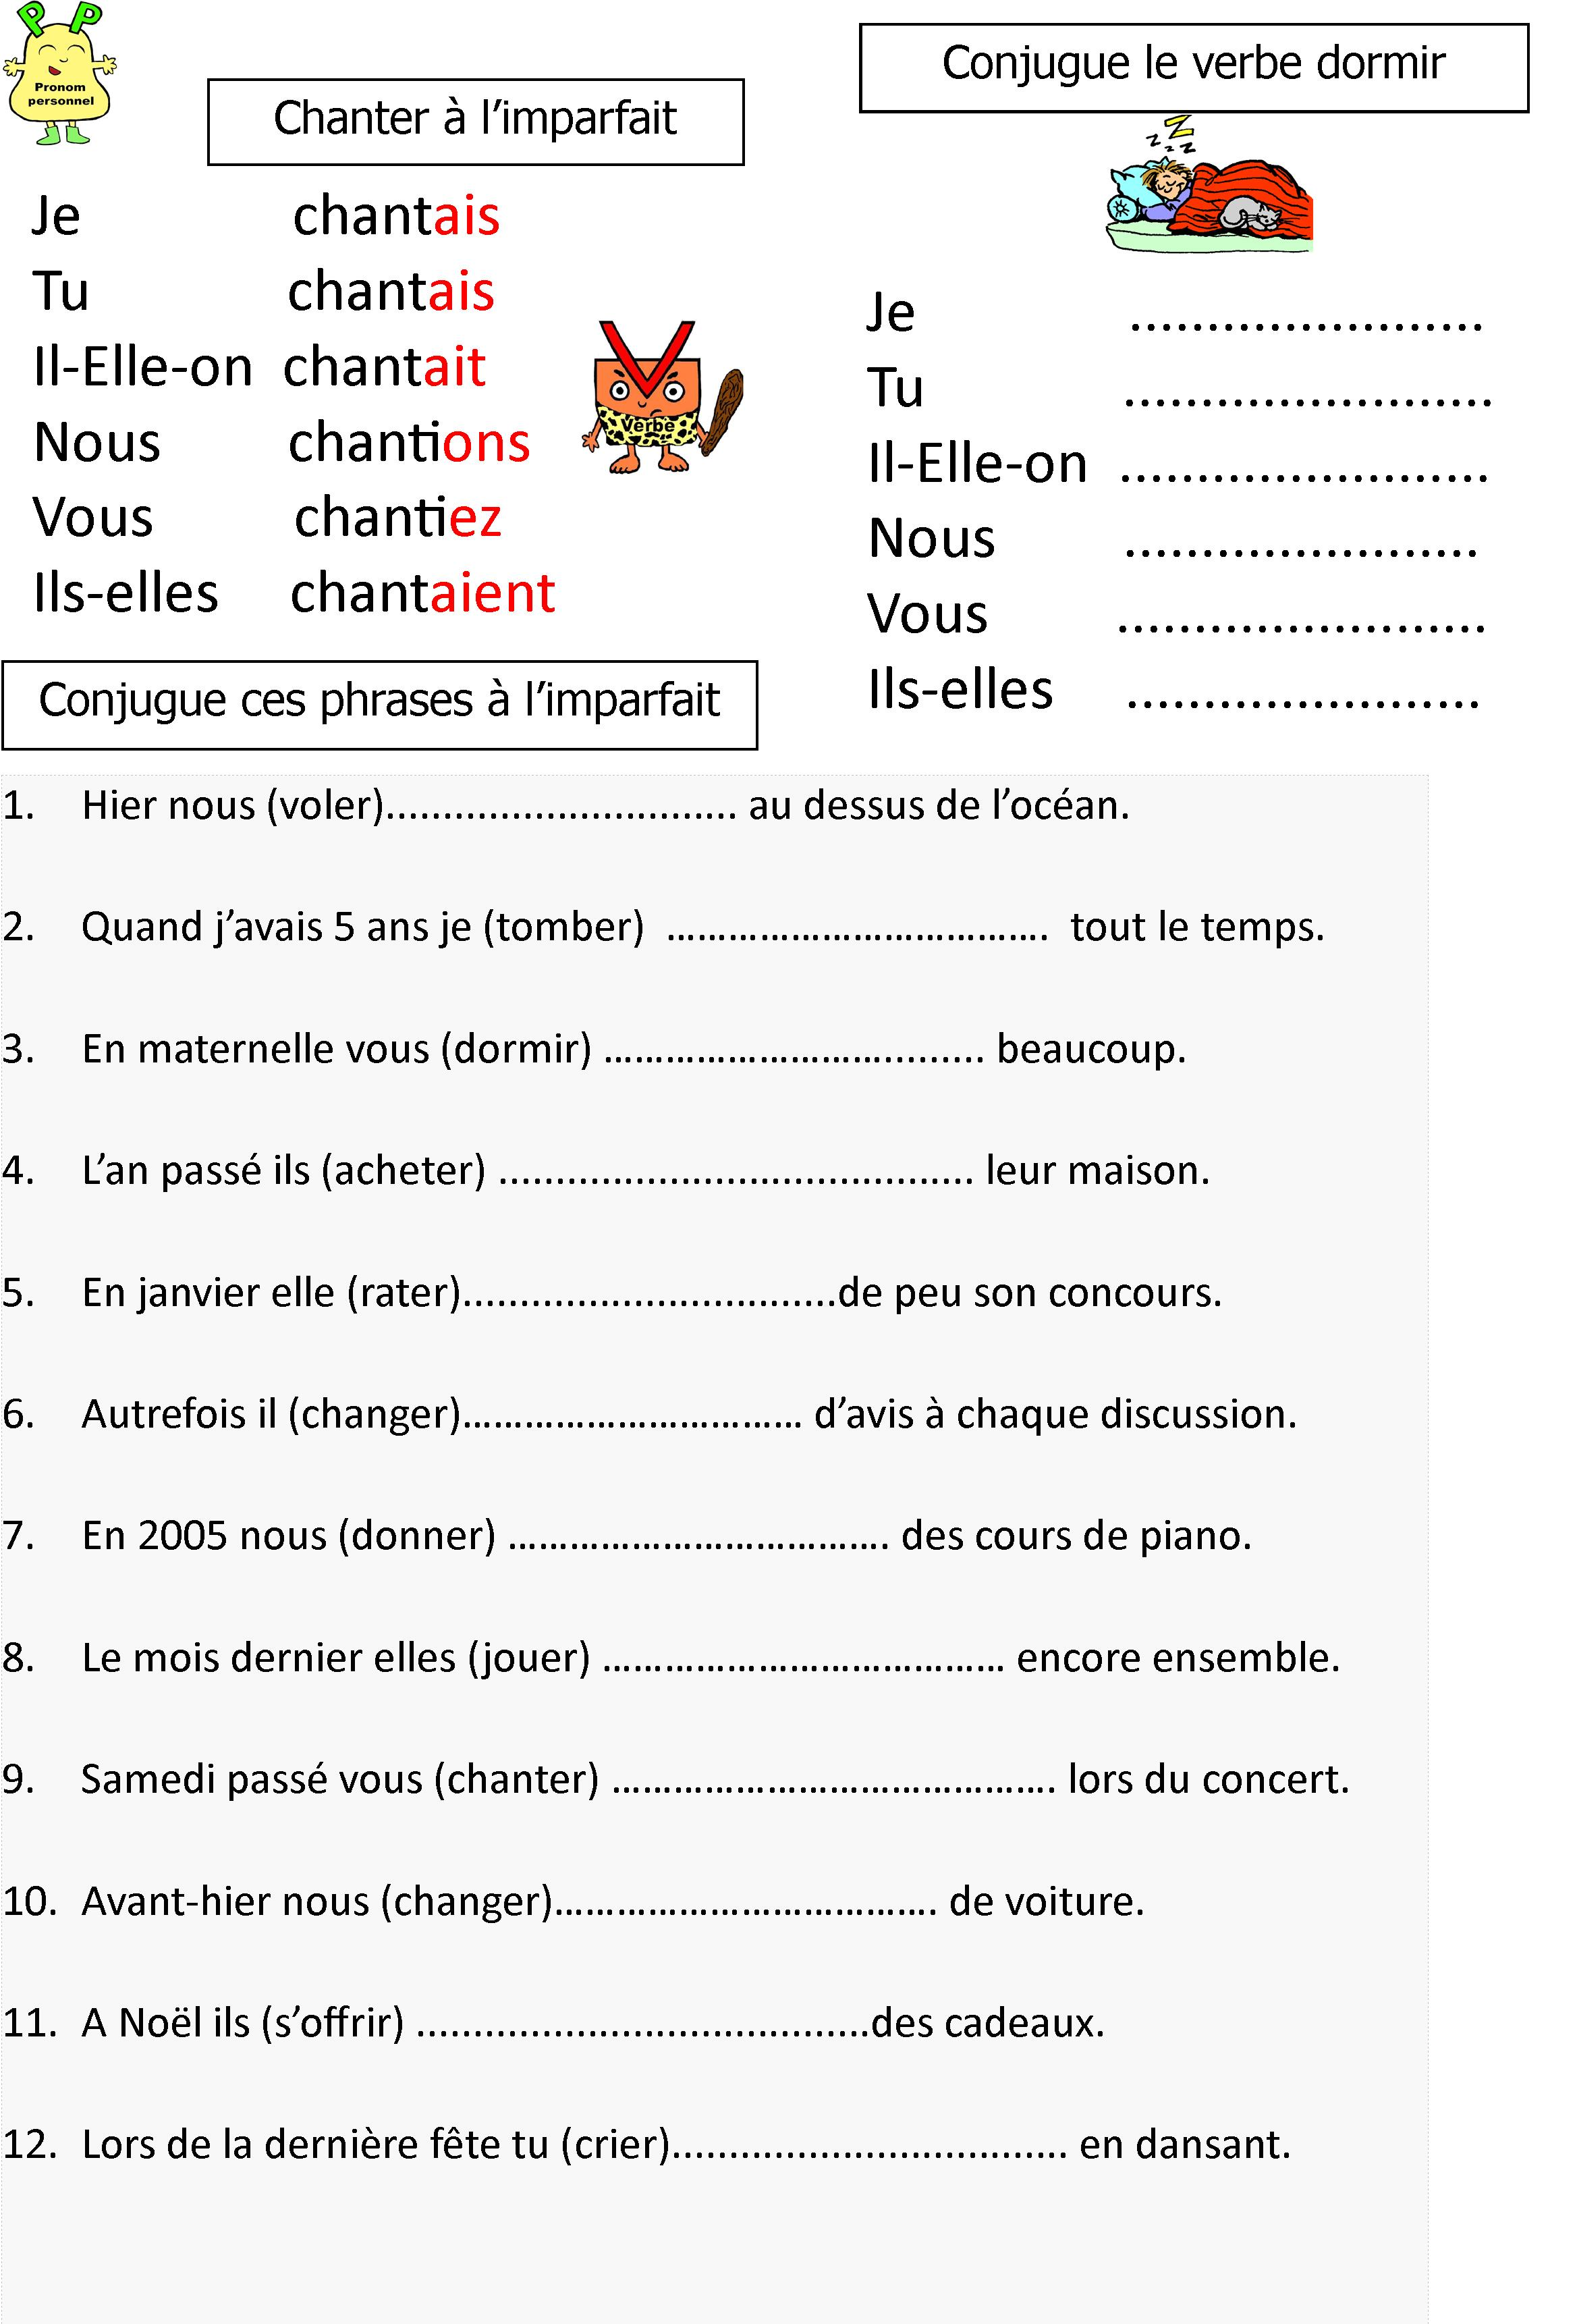 exercices d'orthographe pour adultes pdf